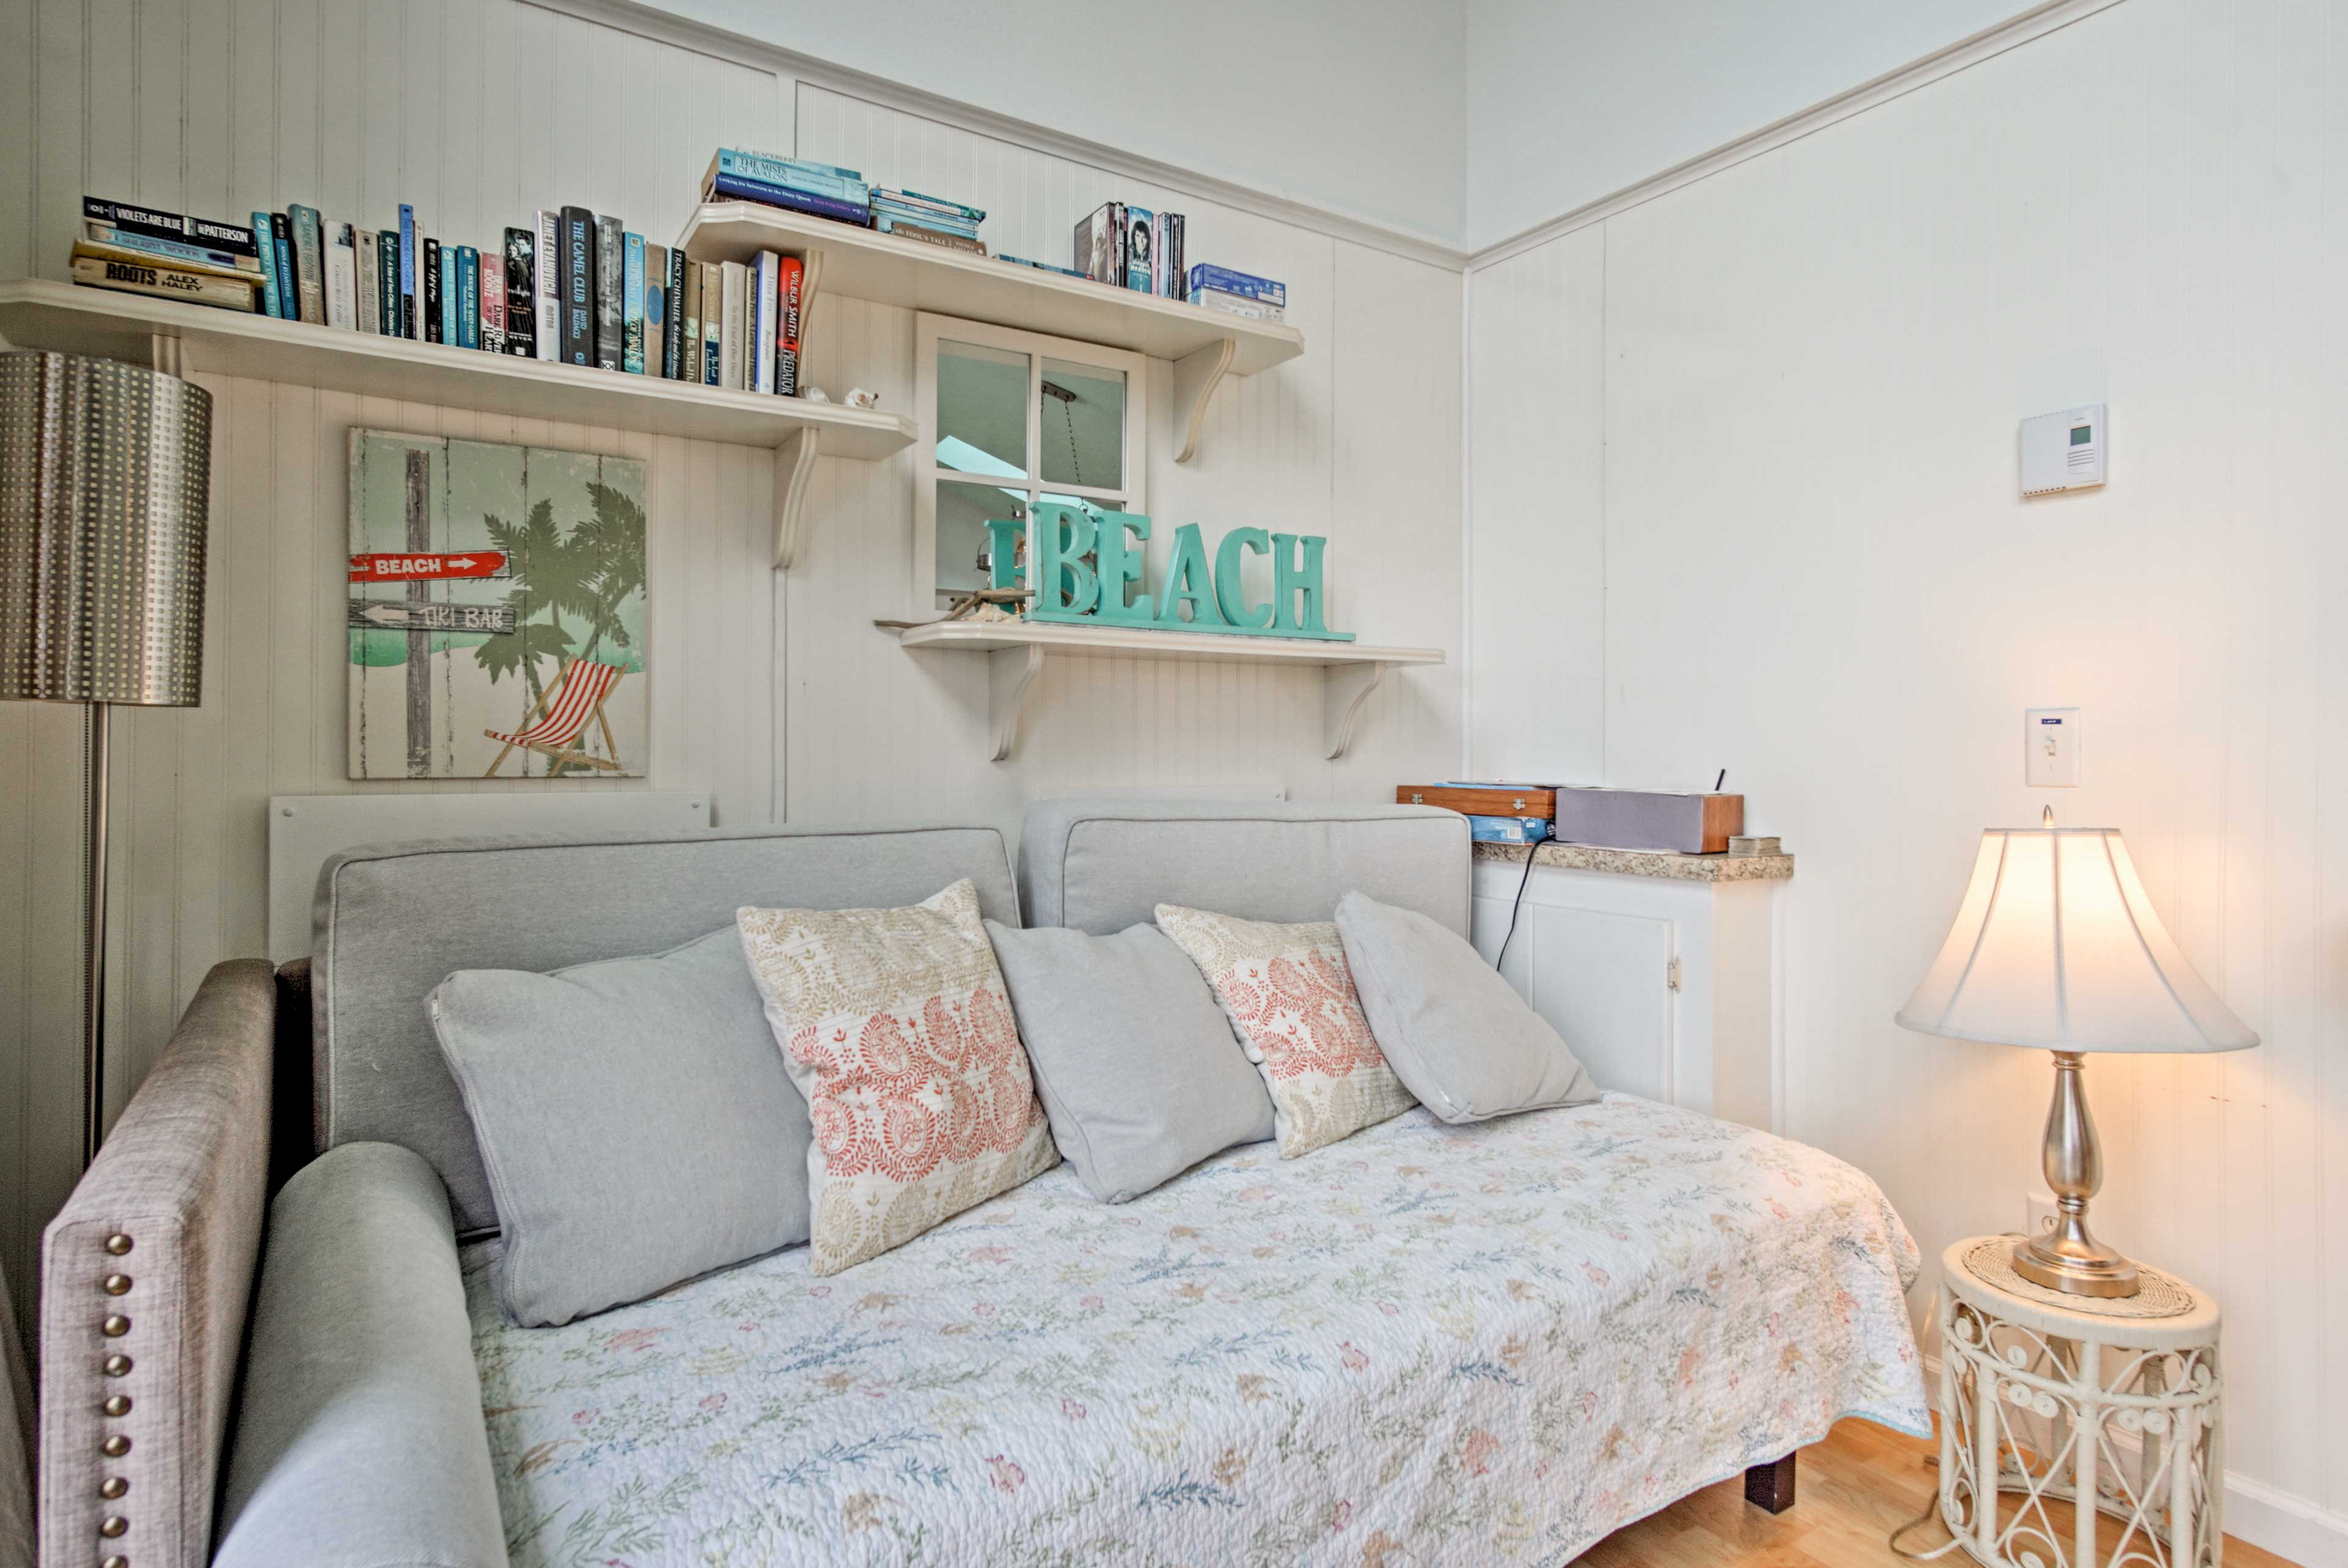 A sofa bed in the living room offers a cozy spot to read a book and get a good night's sleep!